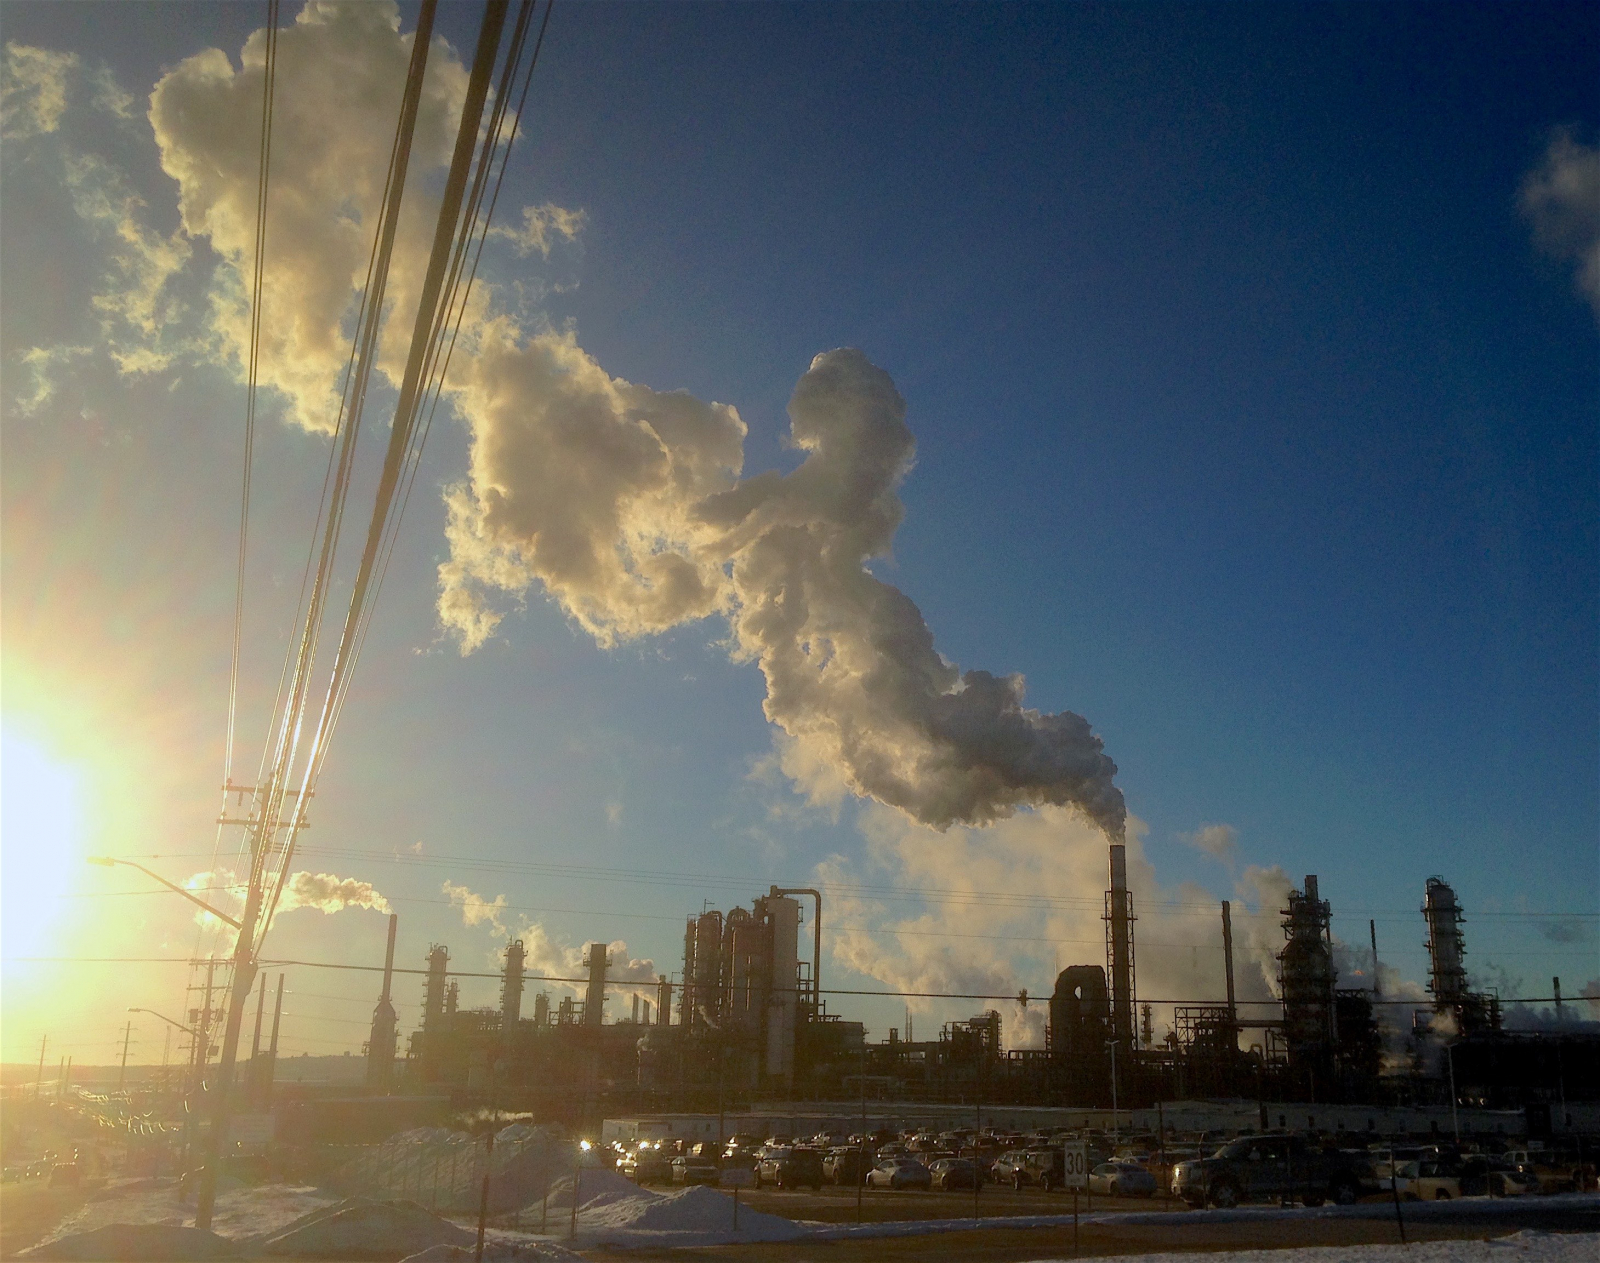 Irving Oil, refinery, plume, pollution, Irvings